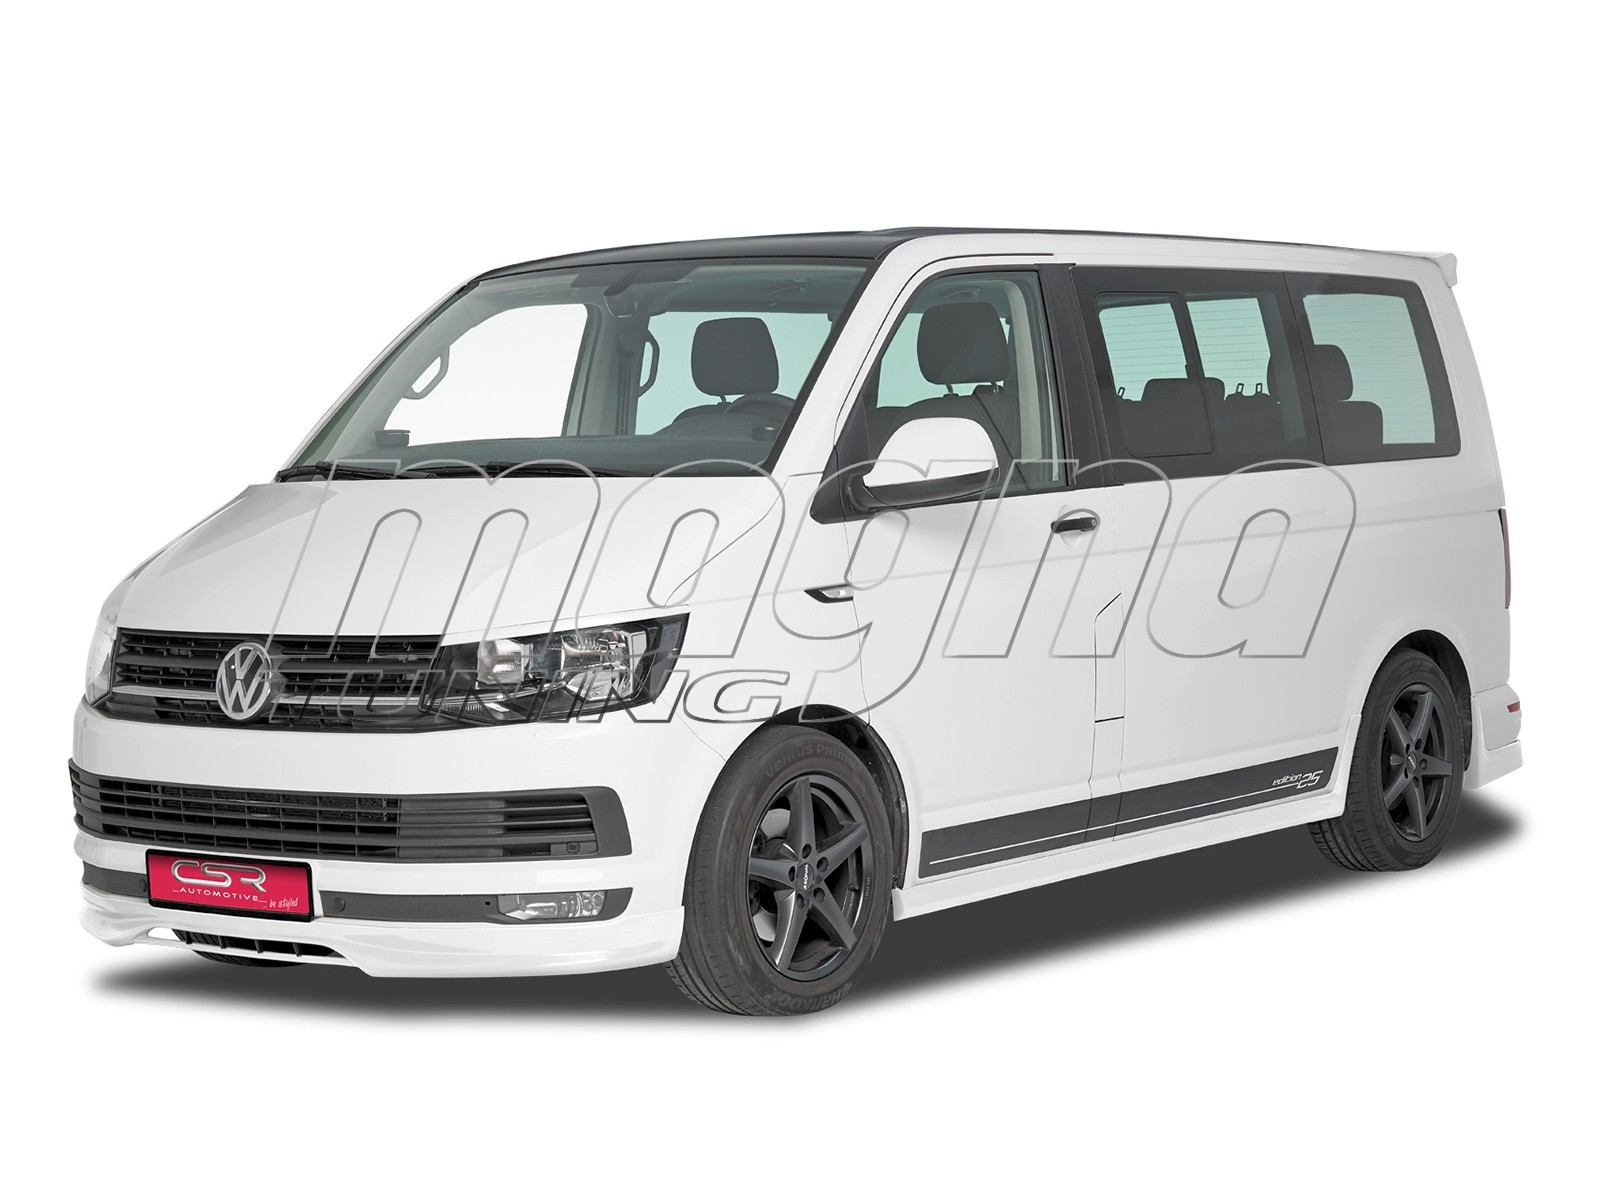 vw transporter t6 cx body kit. Black Bedroom Furniture Sets. Home Design Ideas